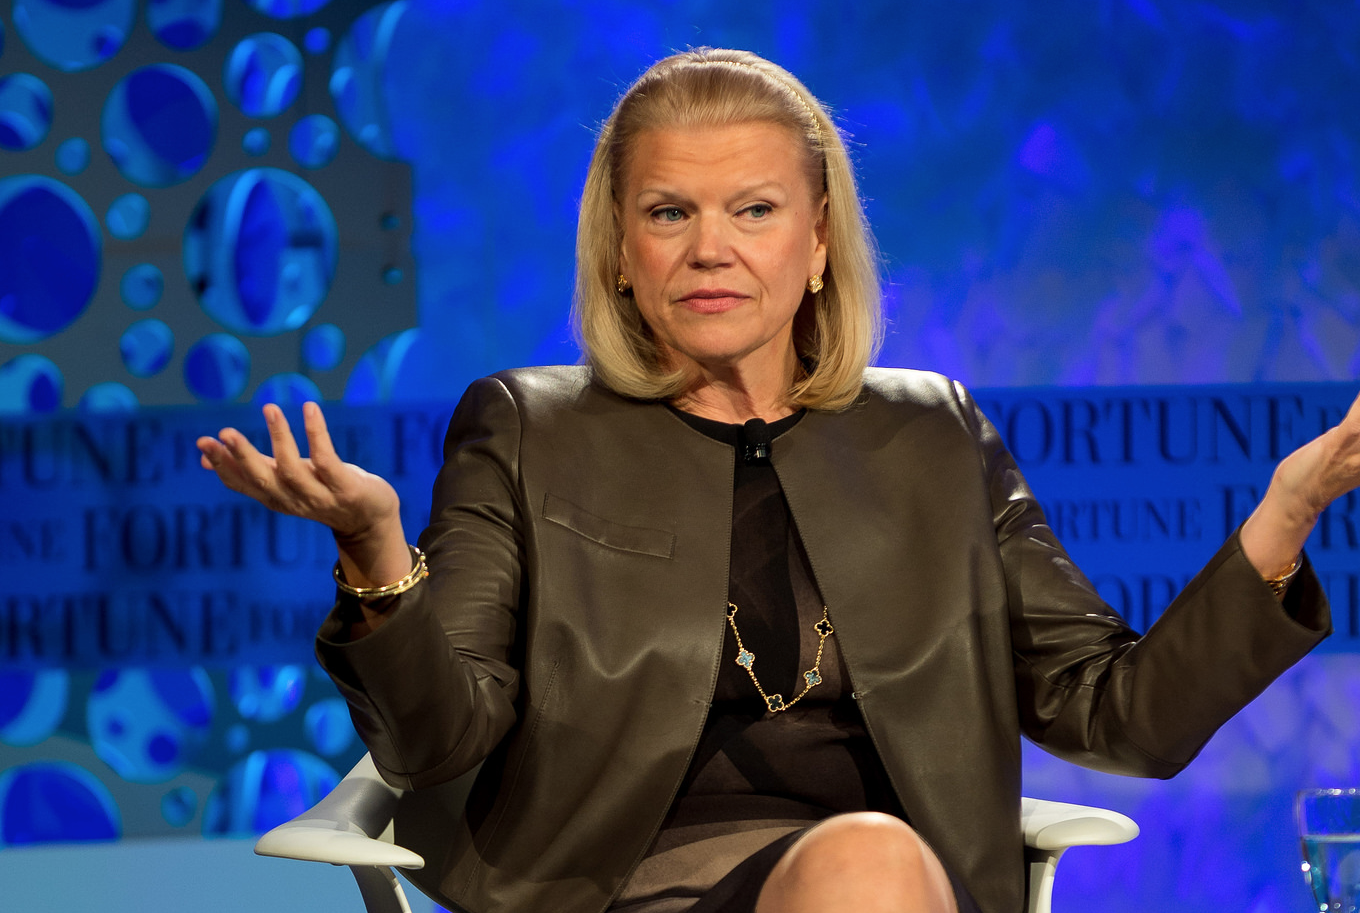 IBM CEO Ginni Rometty at the 2014 Fortune Most Powerful Women summit in Laguna Niguel, Calif.